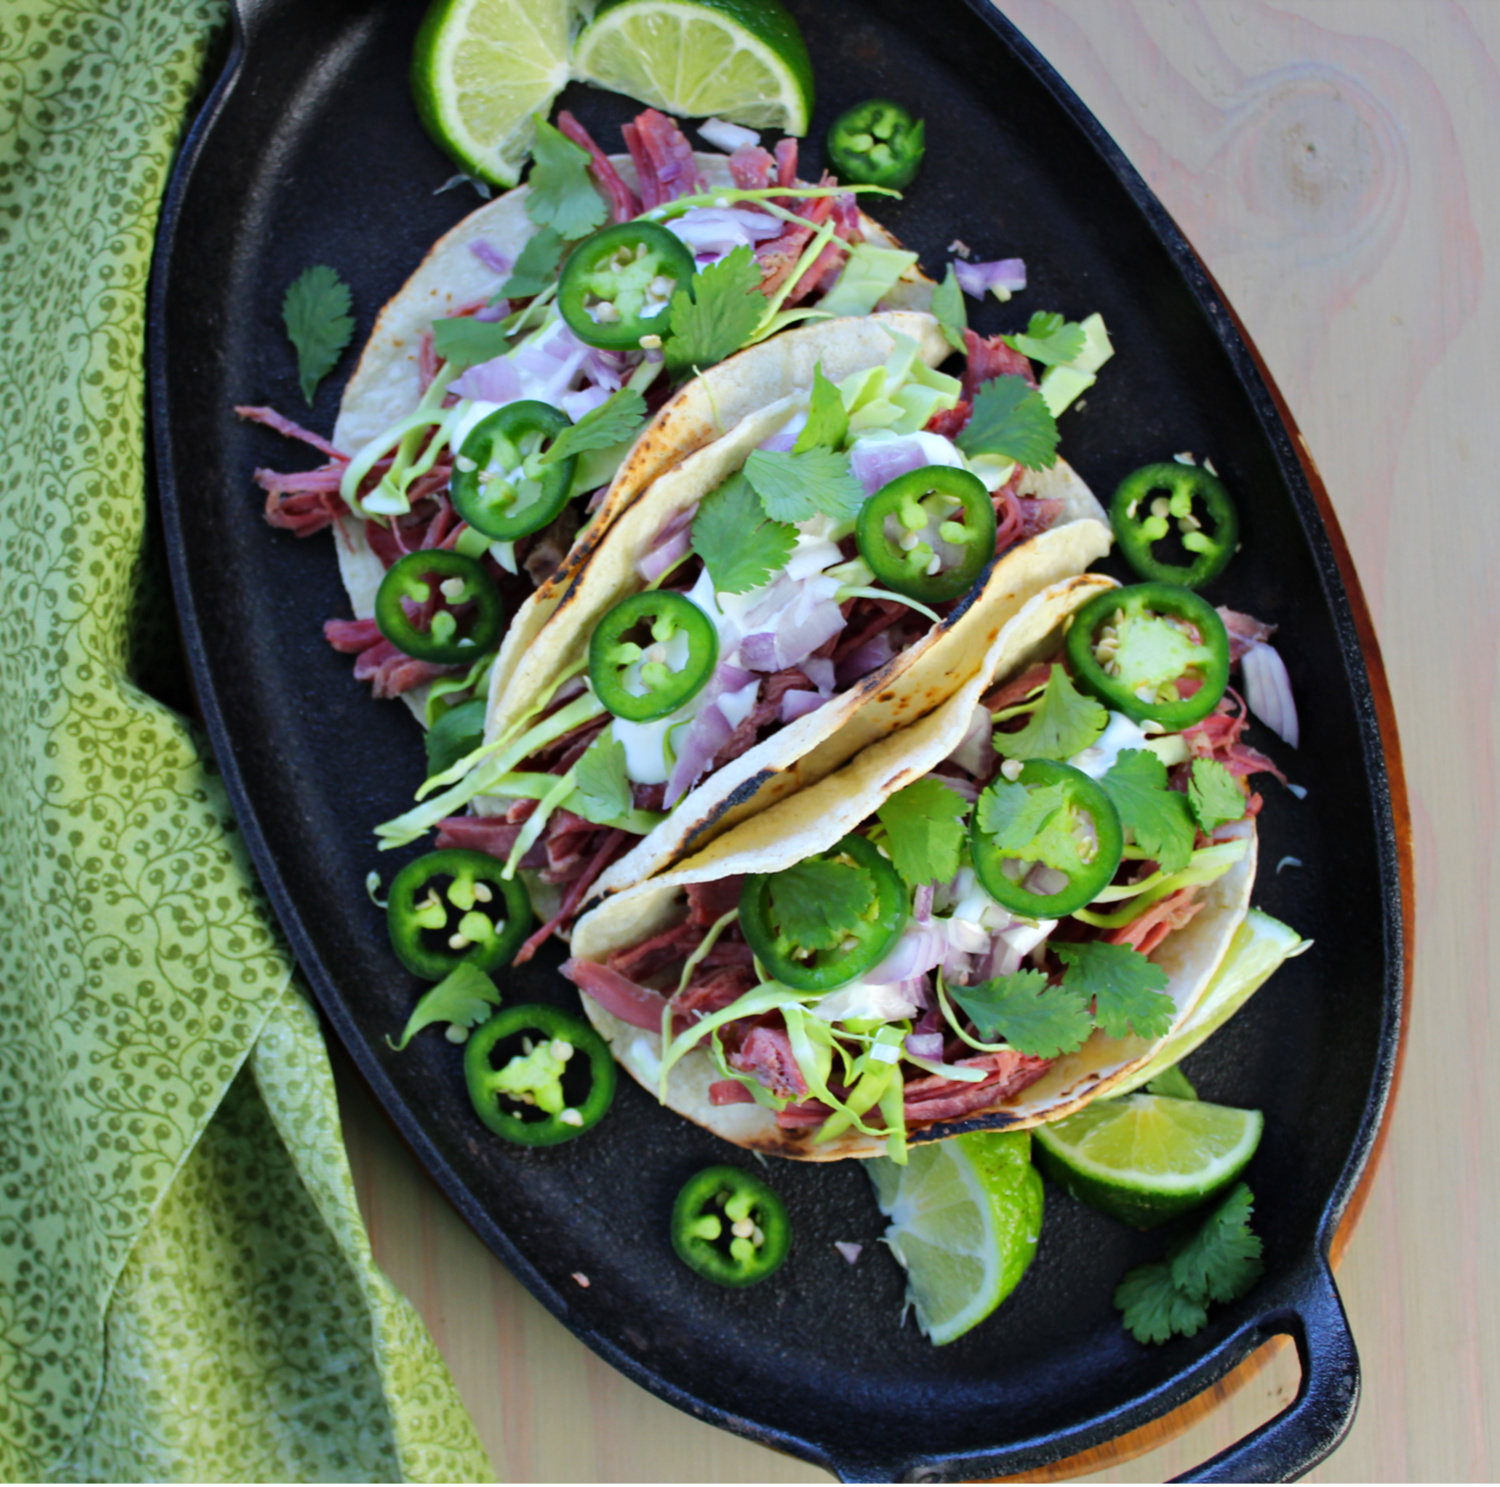 Platter of Corned Beef Tacos by Latinofoodie